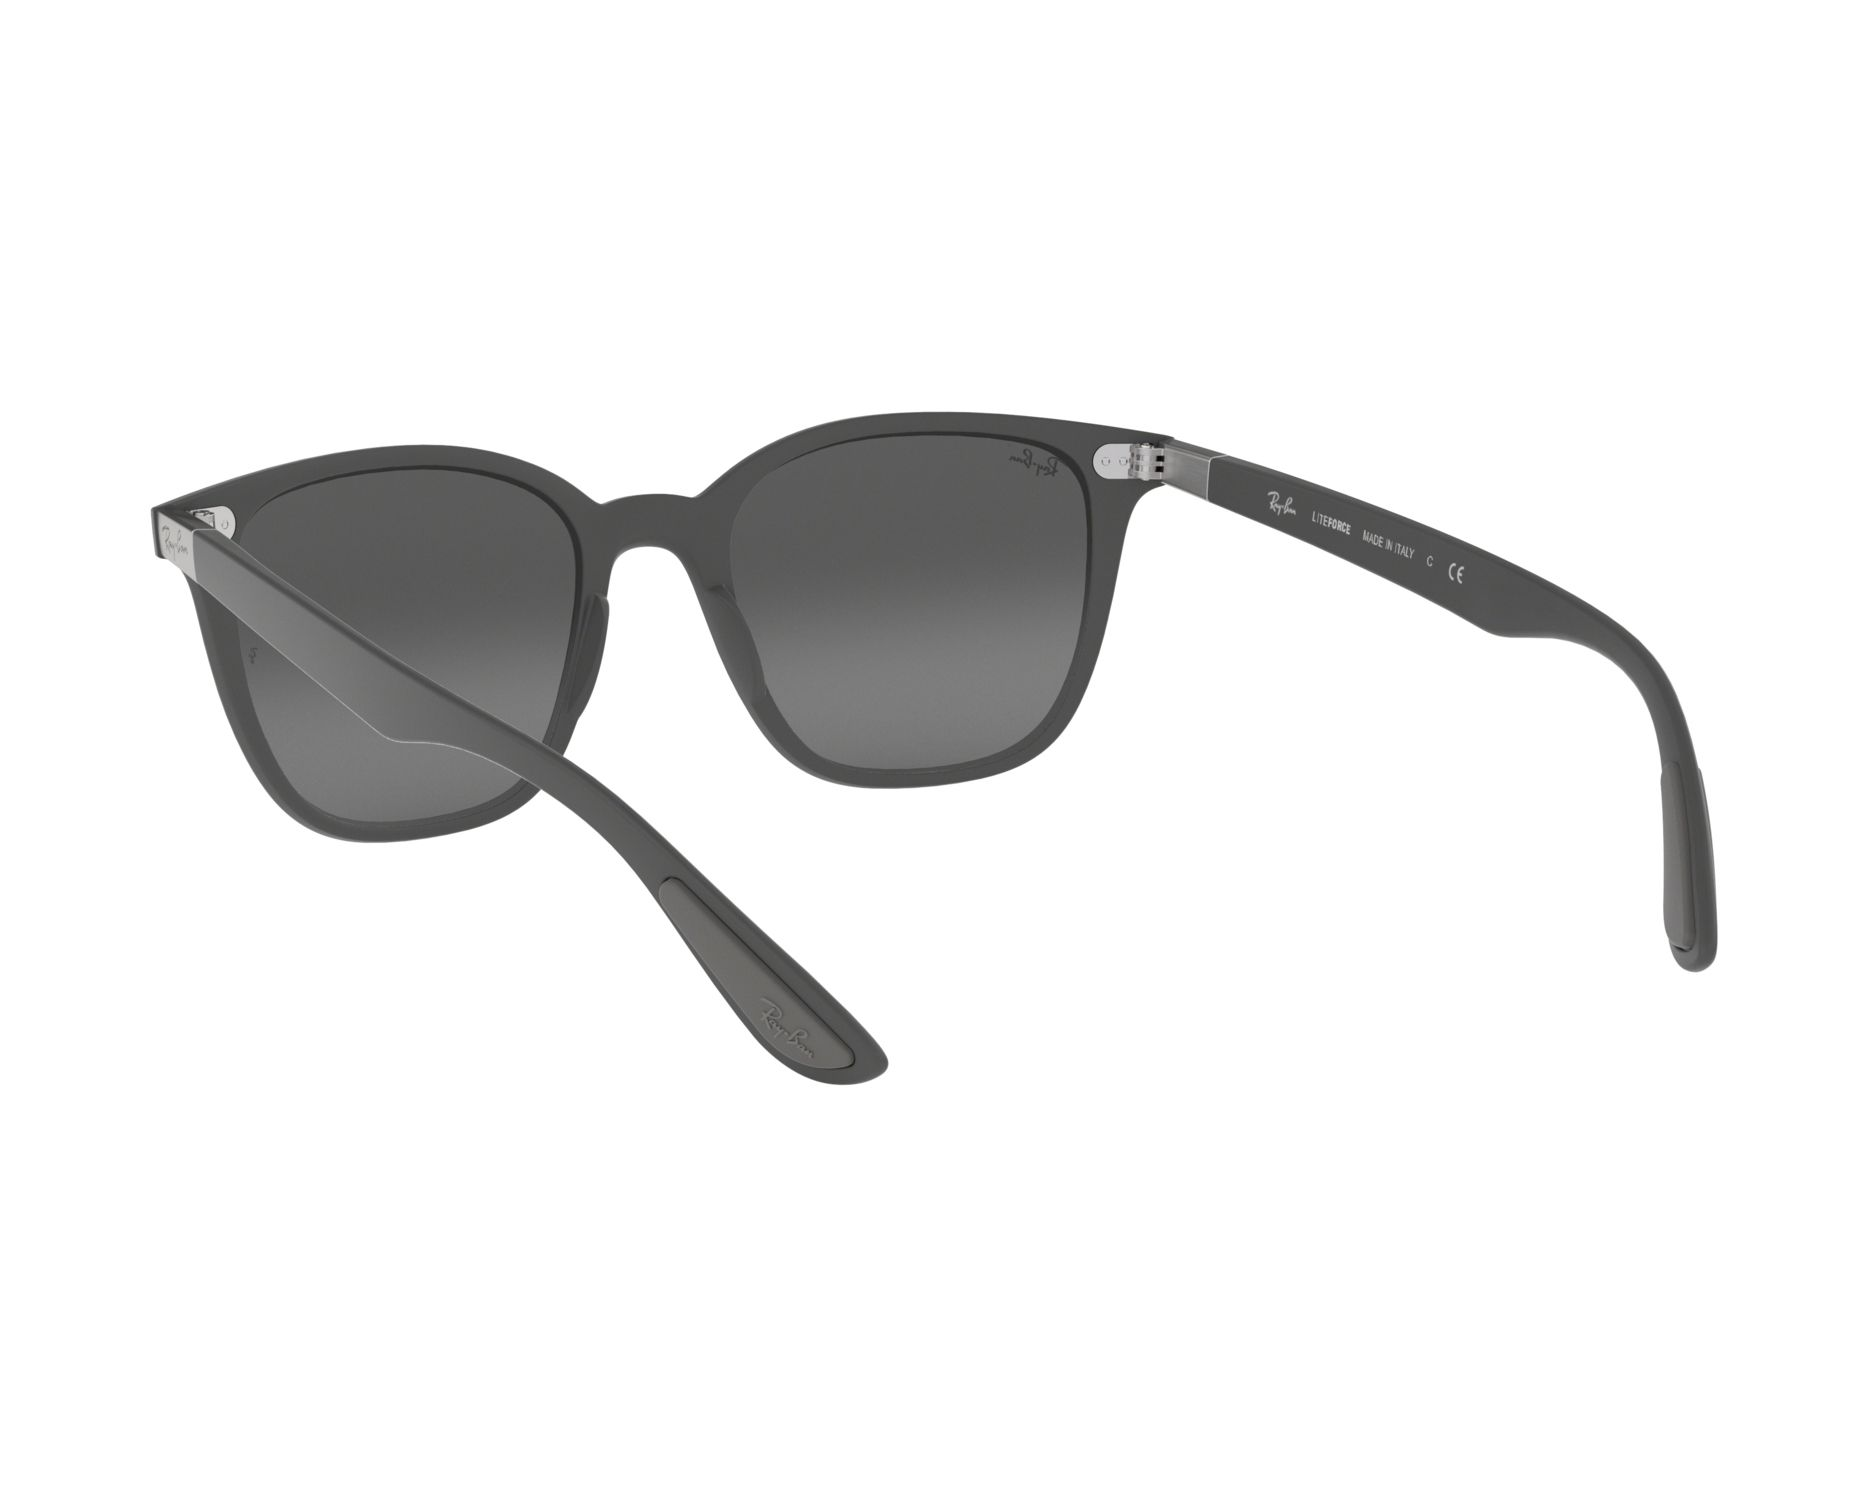 a146b8d477 Sunglasses Ray-Ban RB-4297 633288 51-19 Grey 360 degree view 6